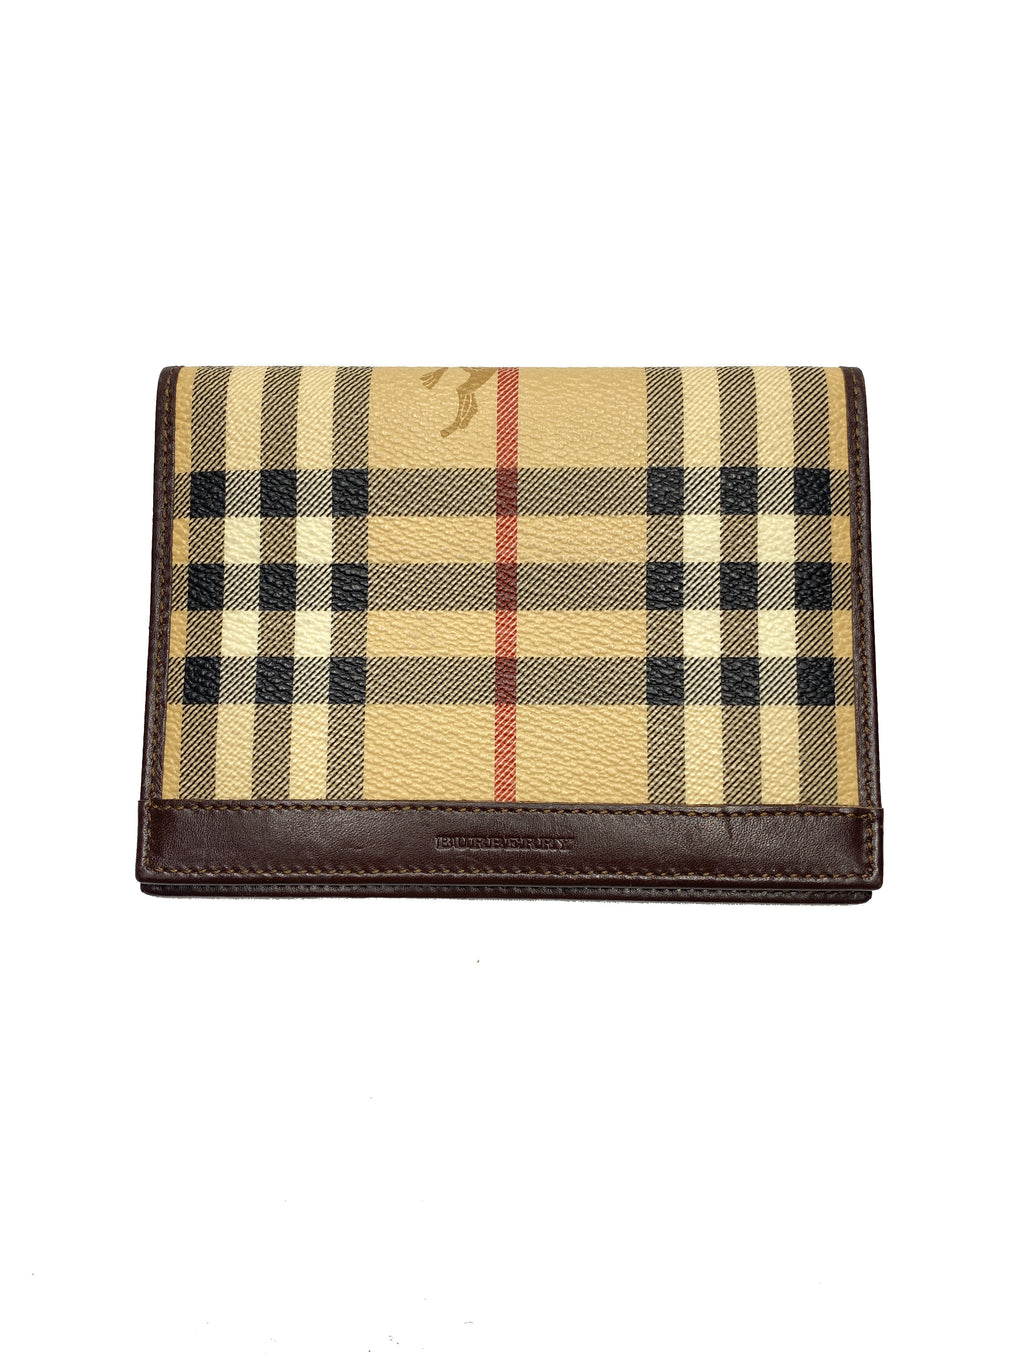 BURBERRY - HAYMARKET CHECK PASSPORT HOLDER CHOCOLATE